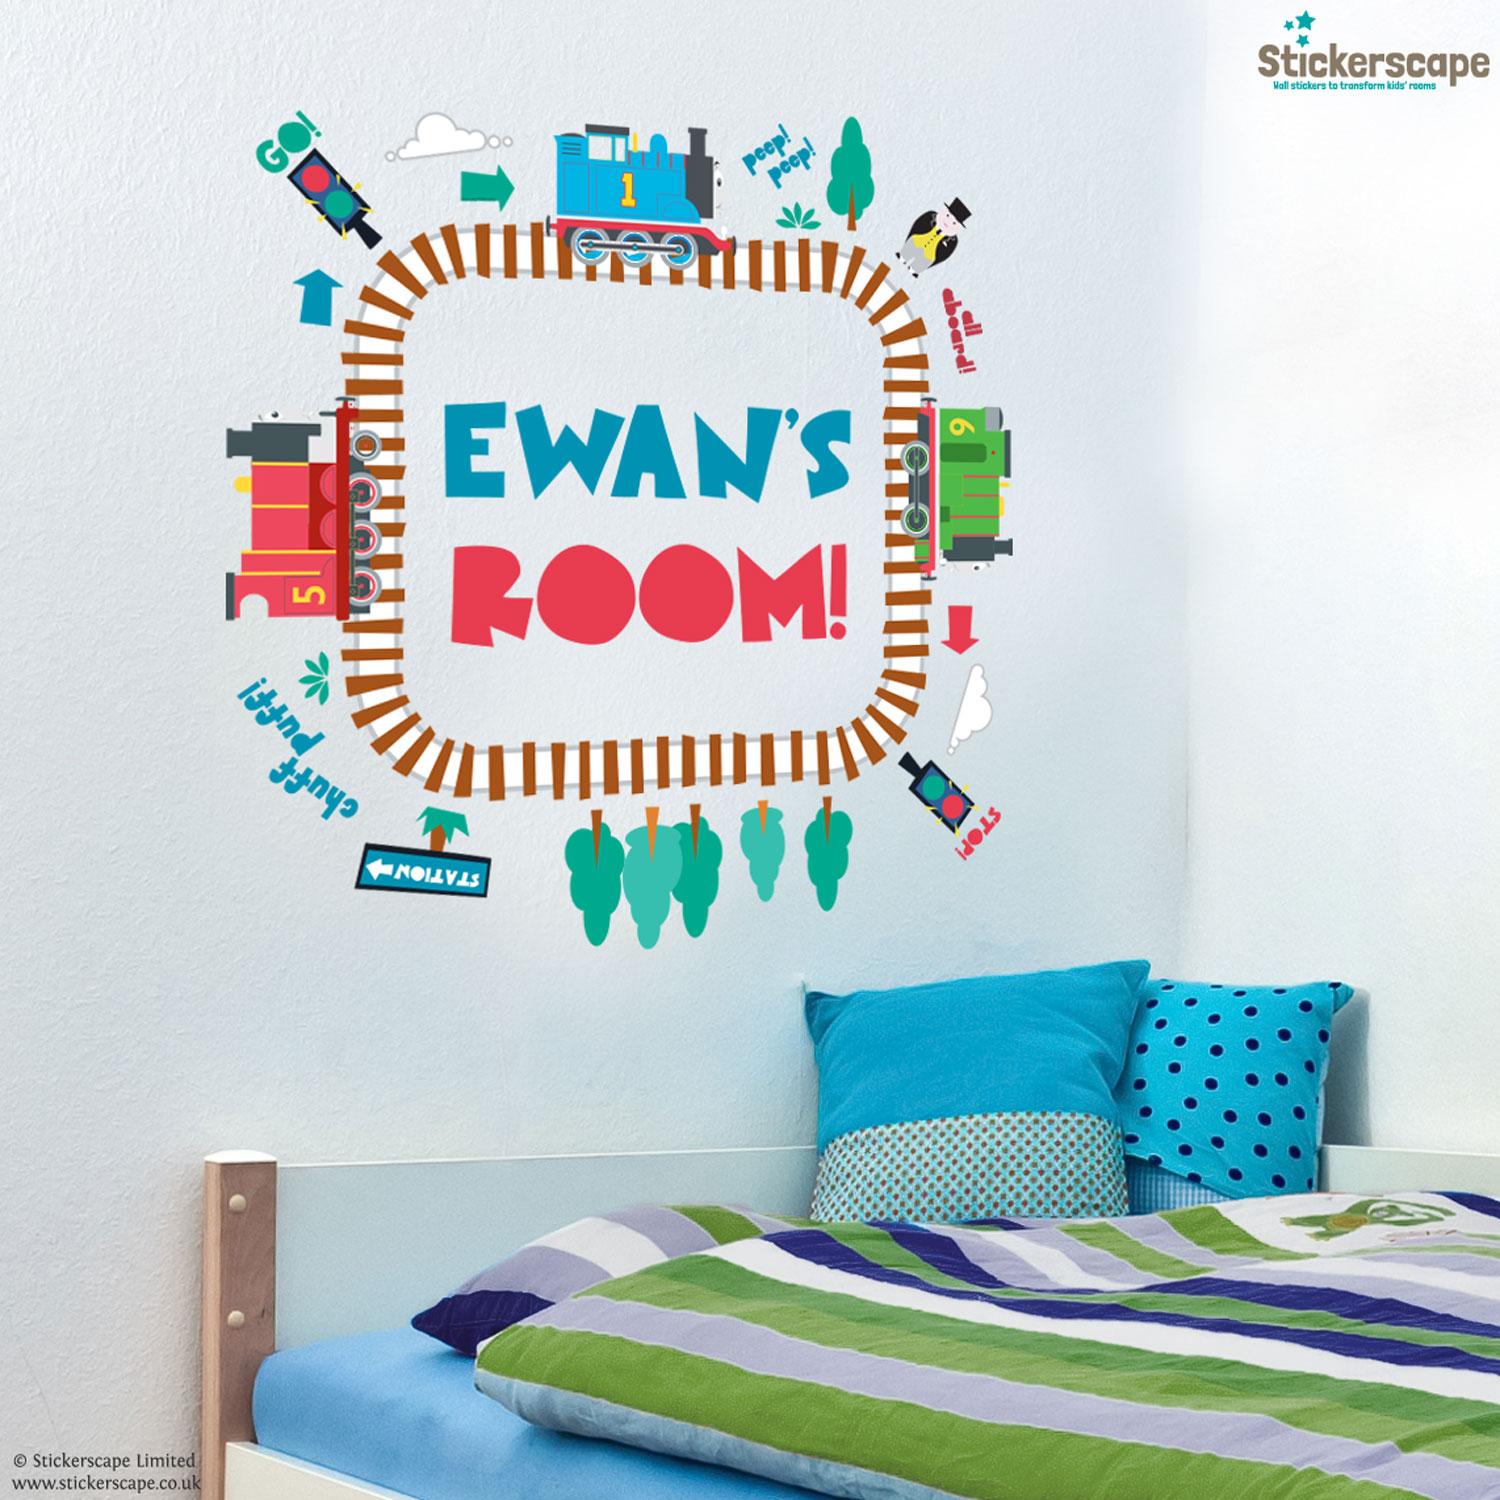 wall stickers personalised wall stickers personalised personalised thomas the tank engine wall stickers thomas and friends wall stickers